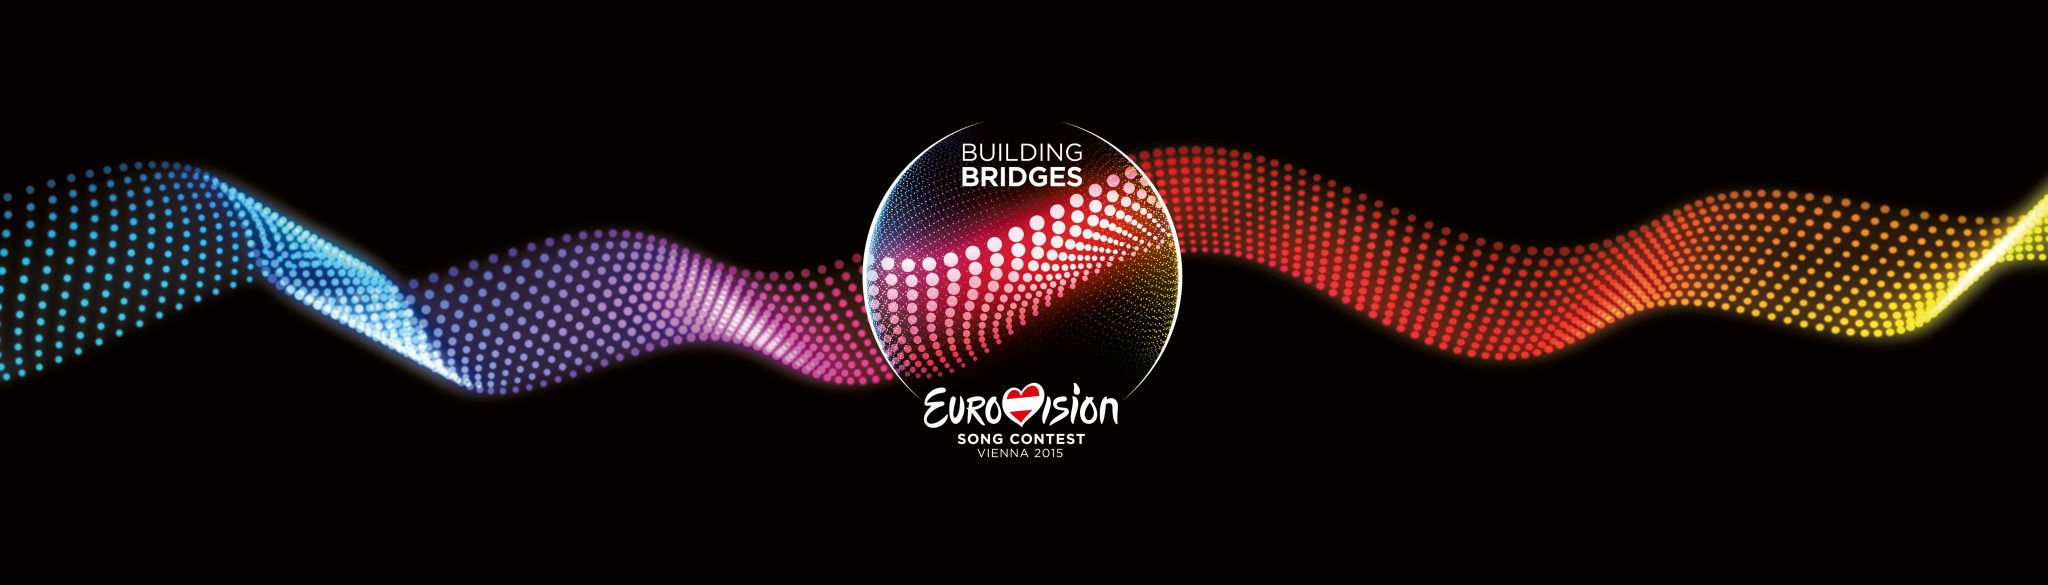 SongContest2015_Logo